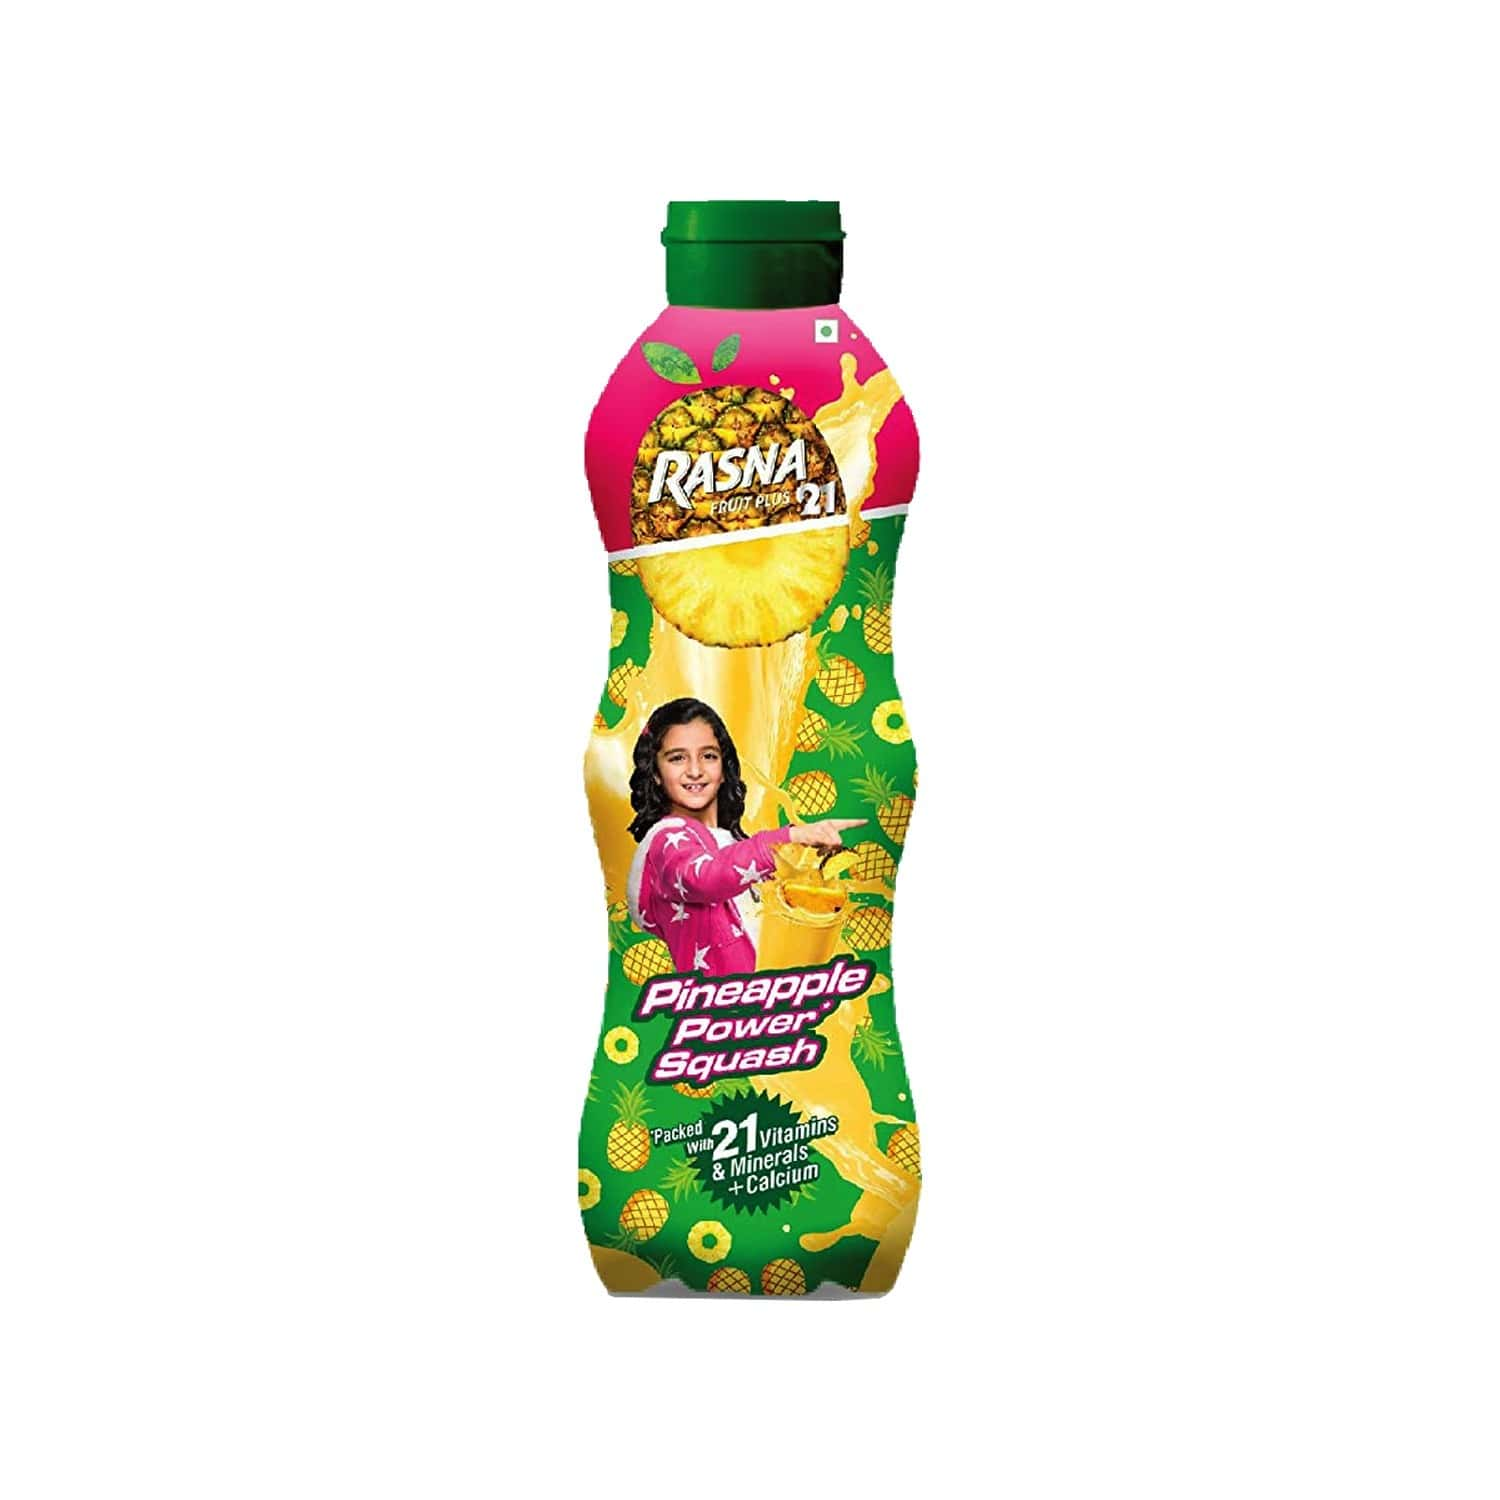 Rasna Squash 750 Ml, Pineapple